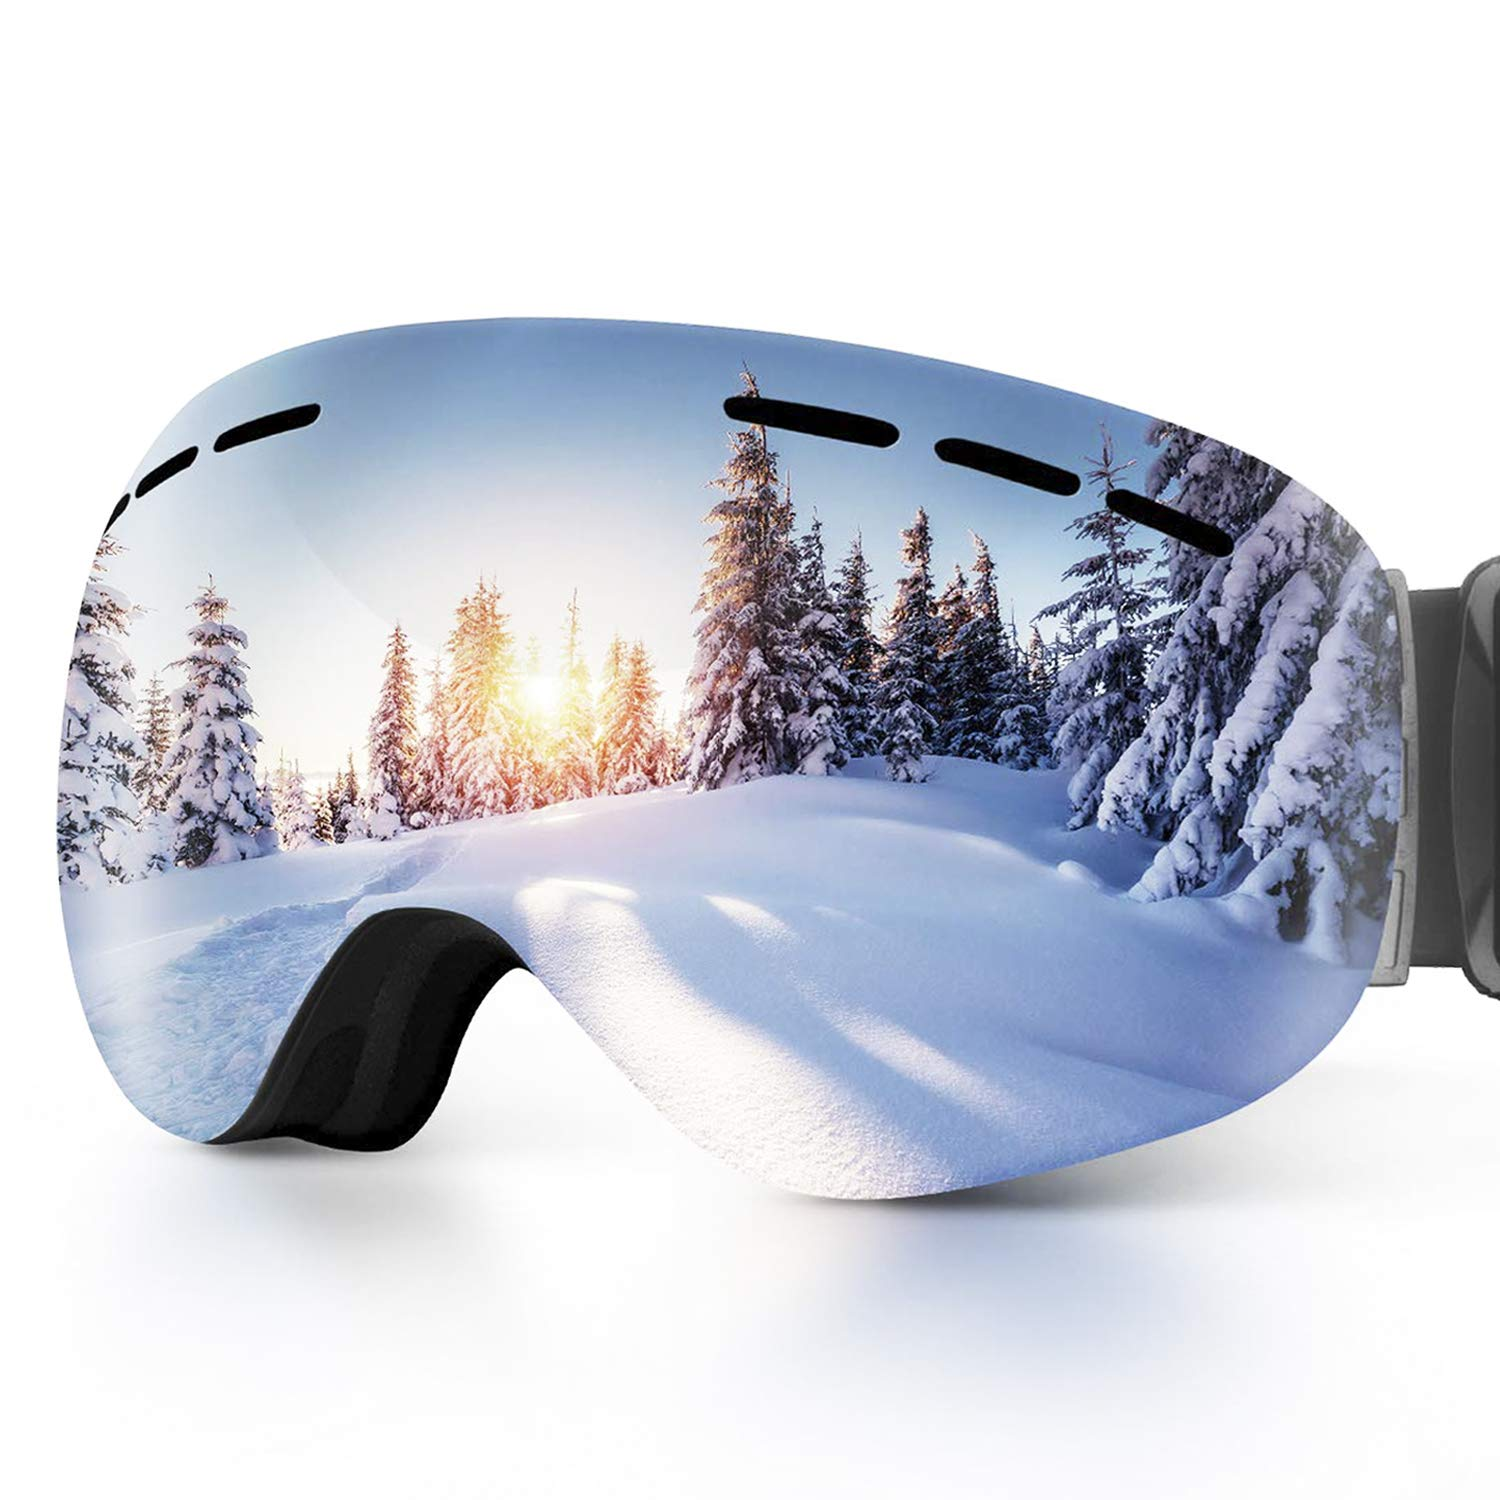 OBOSOE Ski Snowboard Snow Goggles, Interchangeable Lens 100% UV400 Protection Snow Goggles Adult Men,Women,Youth,Boys-Anti-Fog Wide Spherical Safety Goggles by OBOSOE